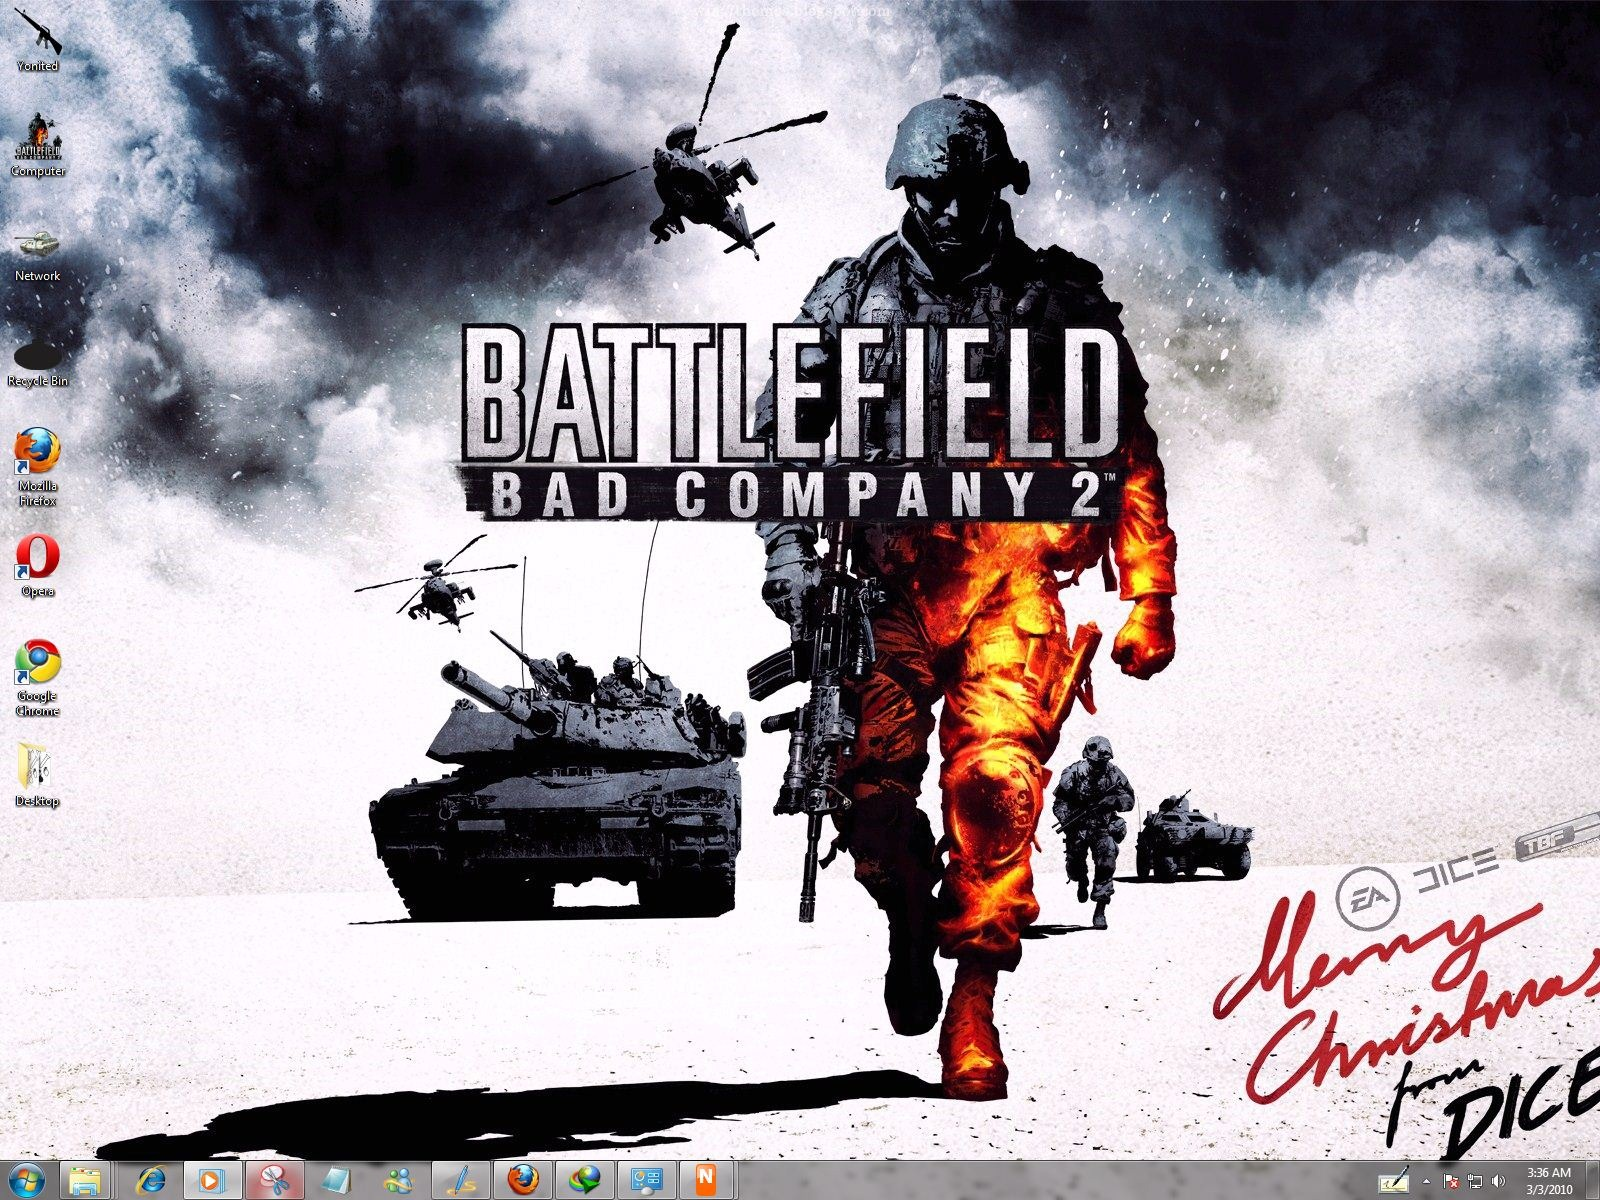 win 8 themes: BattleField Bad Company 2 Windows 7 Theme With